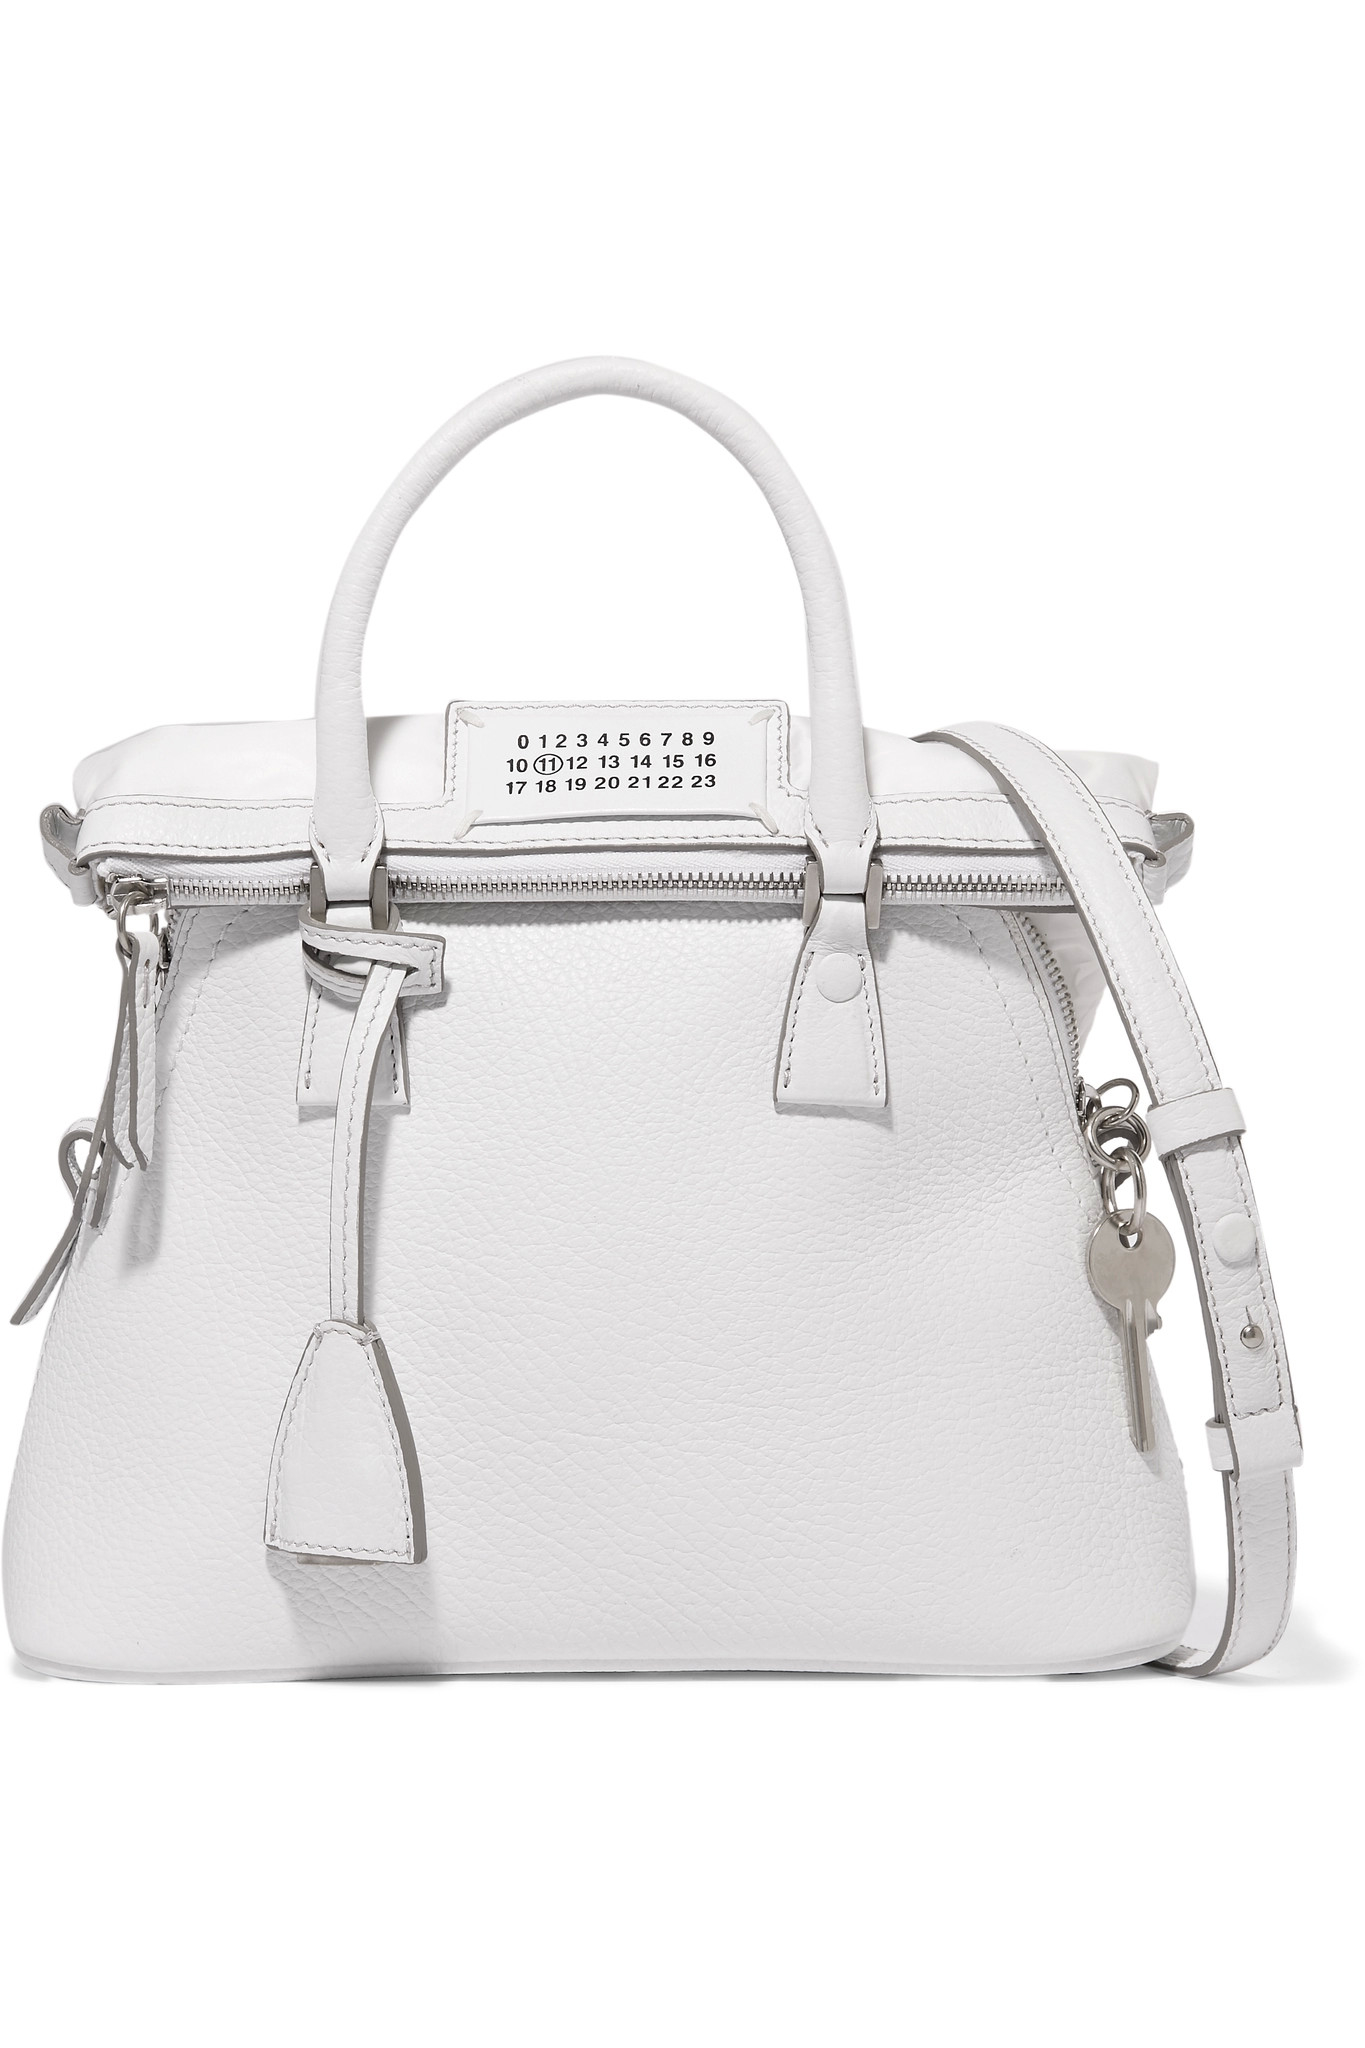 Baby Bags Durban Maison Margiela 5ac Baby Textured Leather Tote In White Lyst